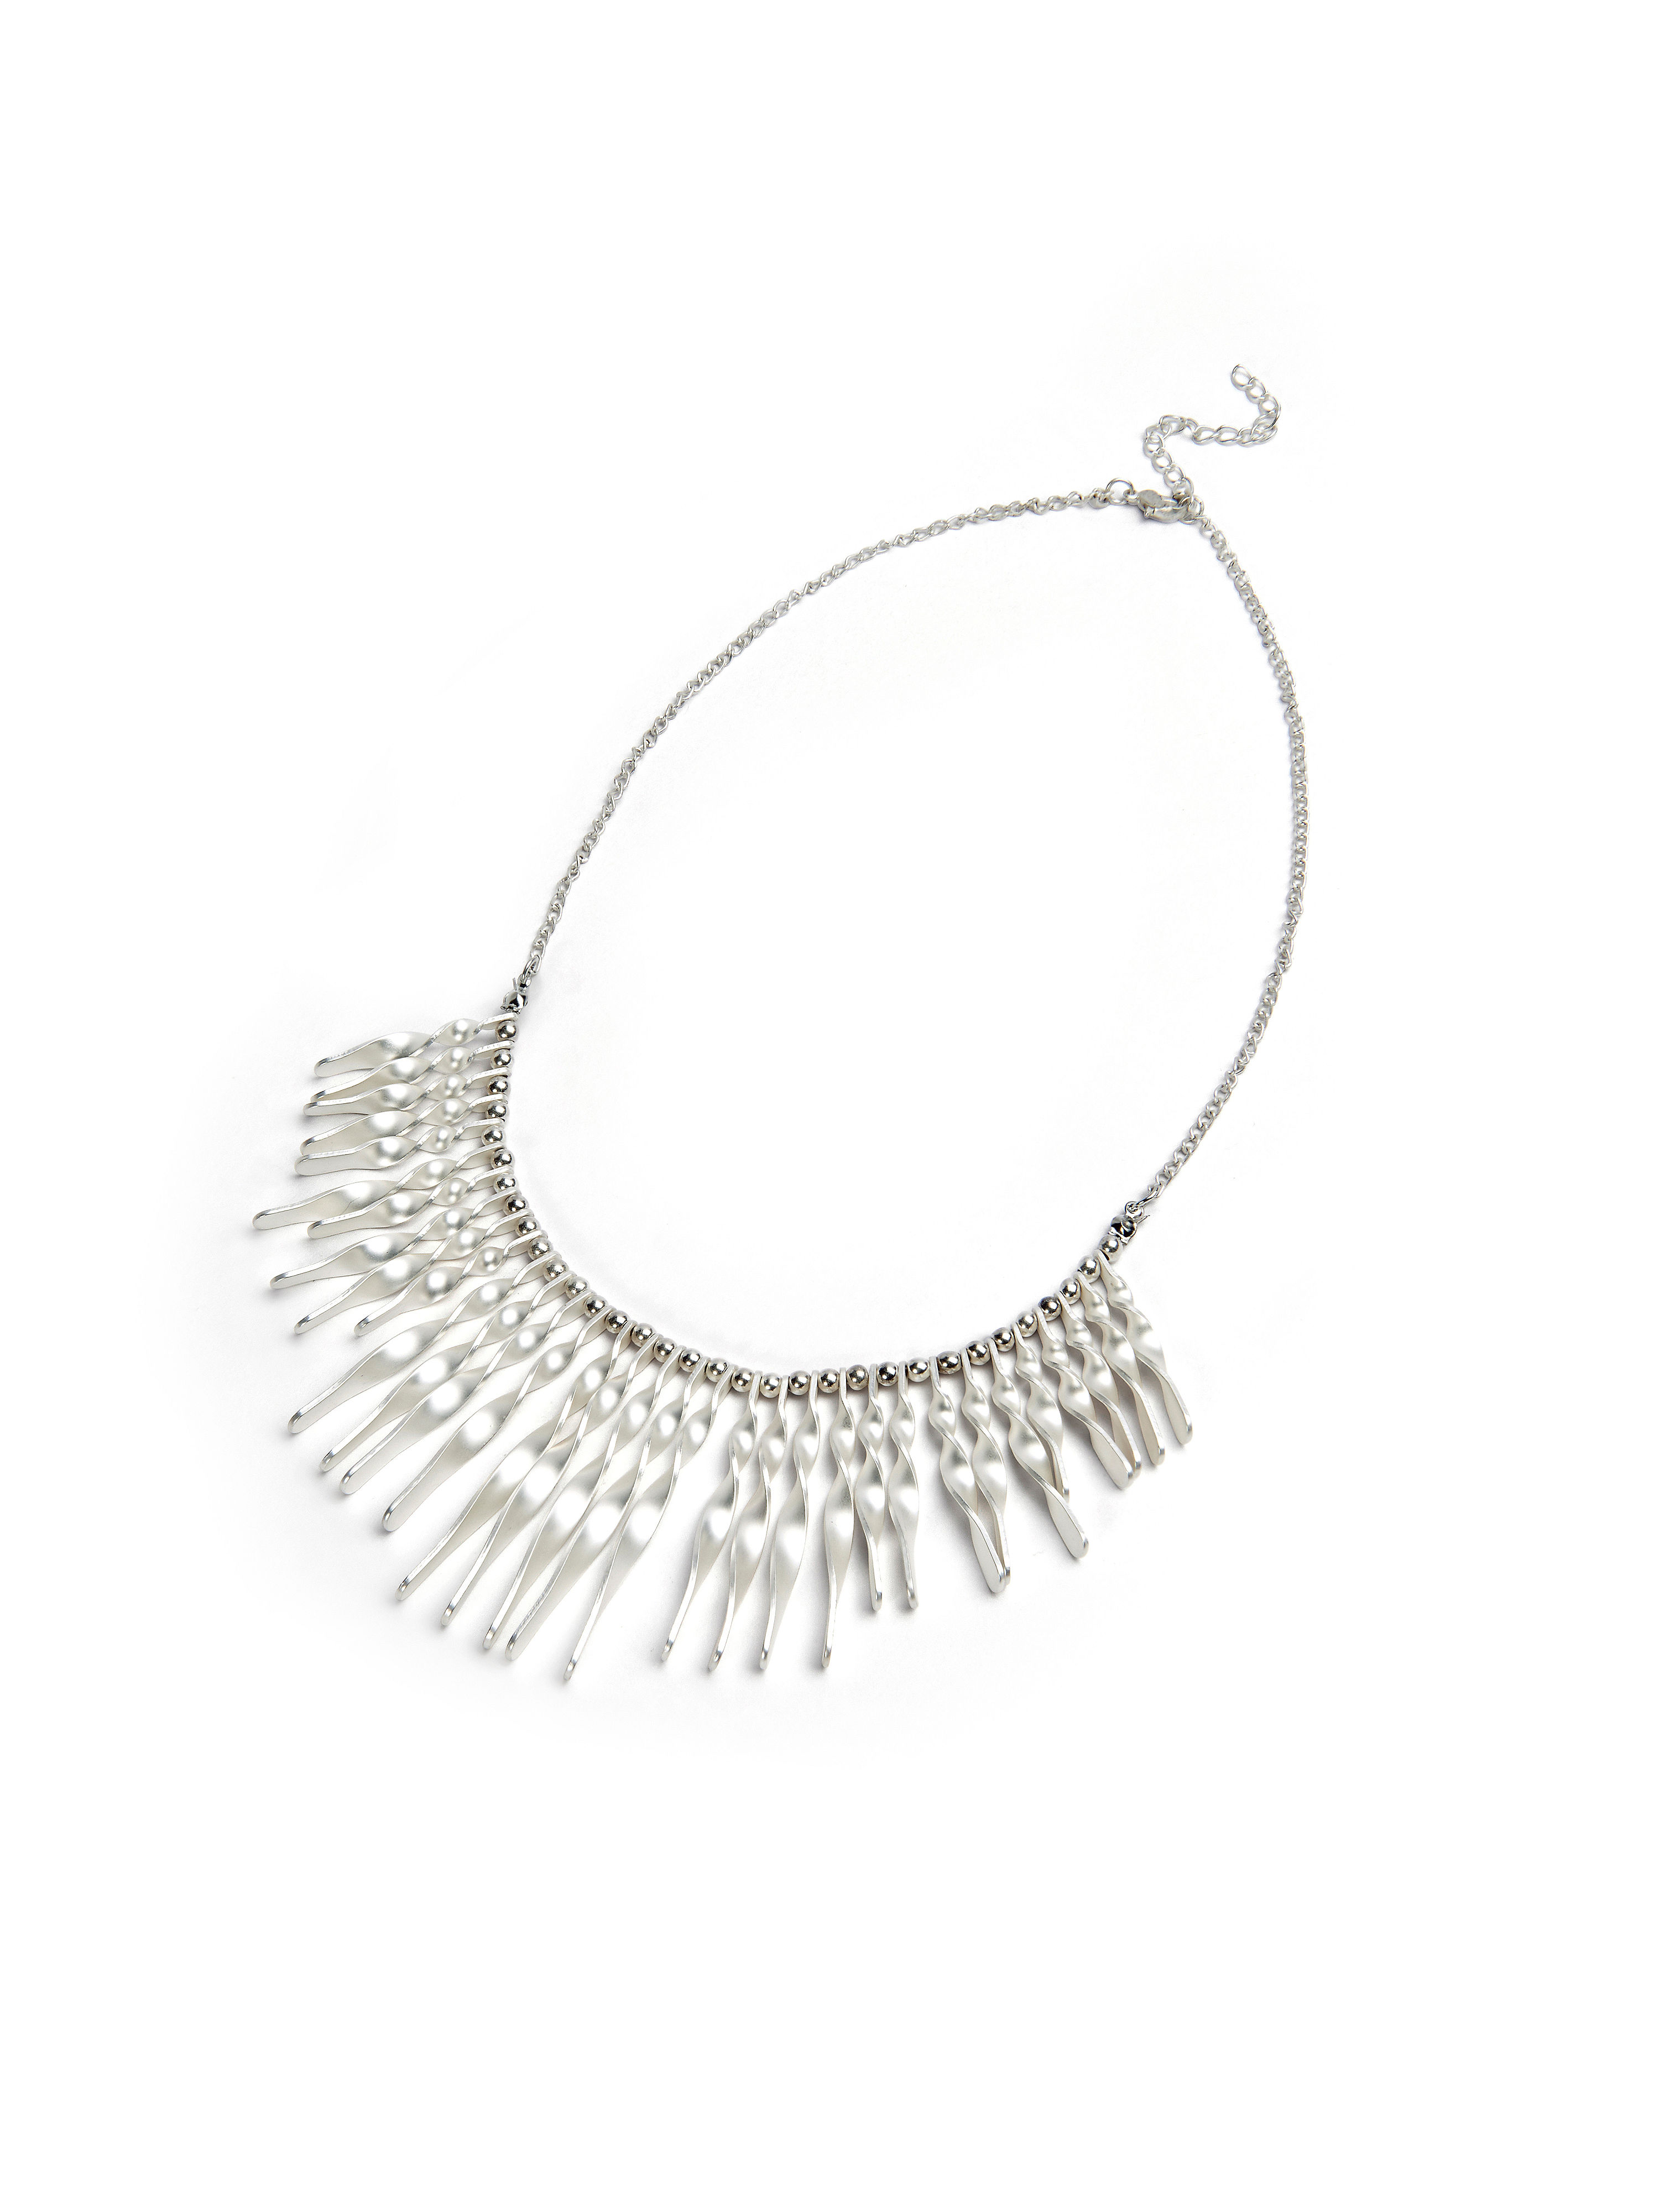 necklace-from-looxent-silver